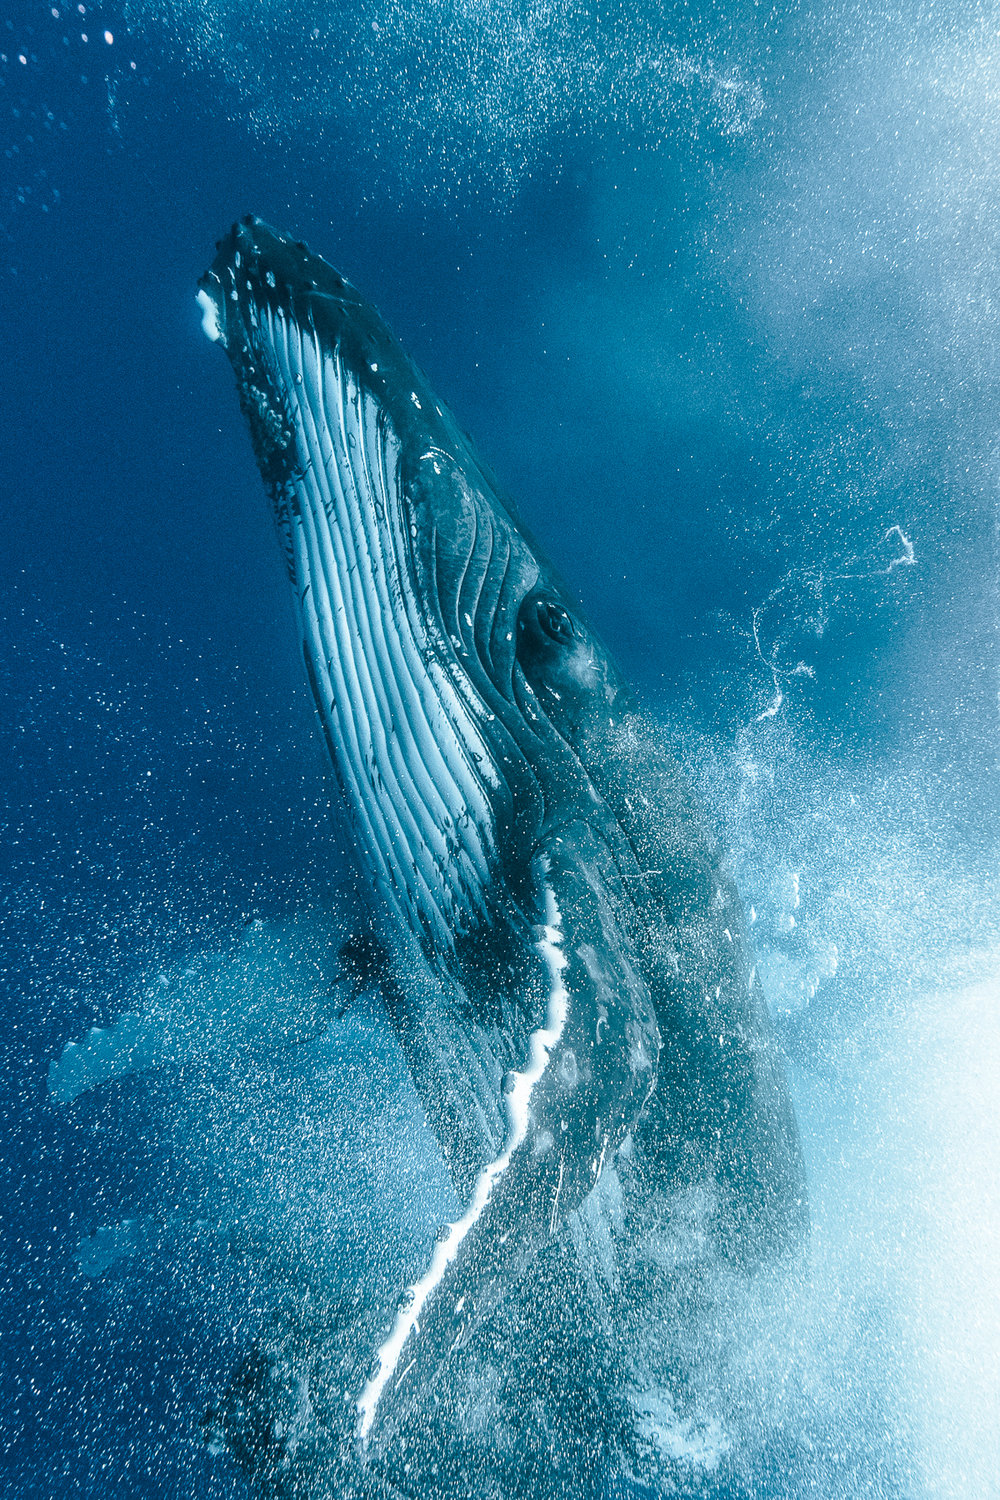 KARIM_ILIYA_Whales_humpback_underwater_dancing_swim_animal_whale_Tonga_dive 11 8